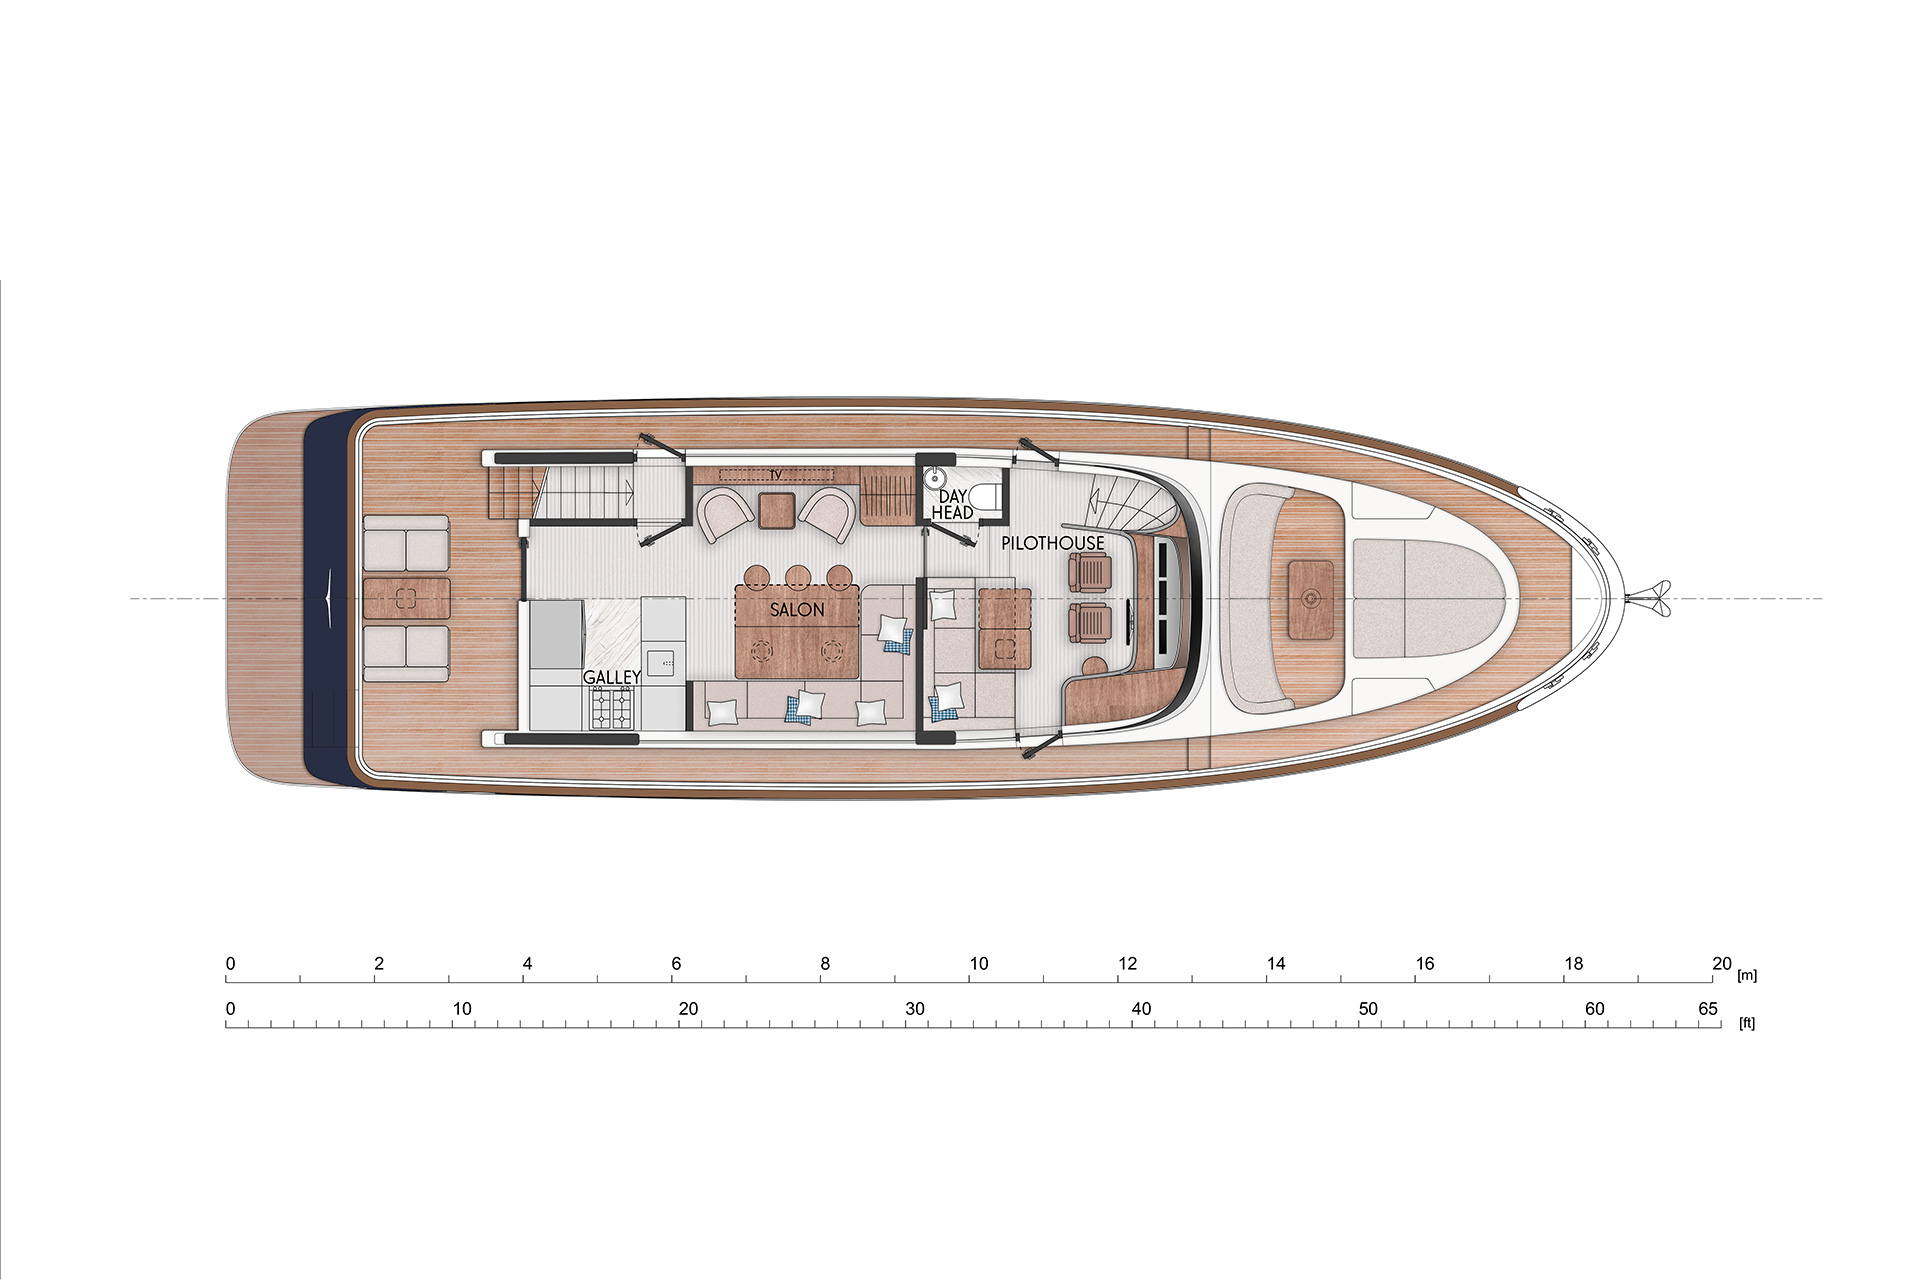 With a big galley  next to the aft deck. Comfortable  dining space in the center of the main deck with arm chairs on the opposite side. Separated helm station with extra sofa and desk. Day head located in the center of the main deck.